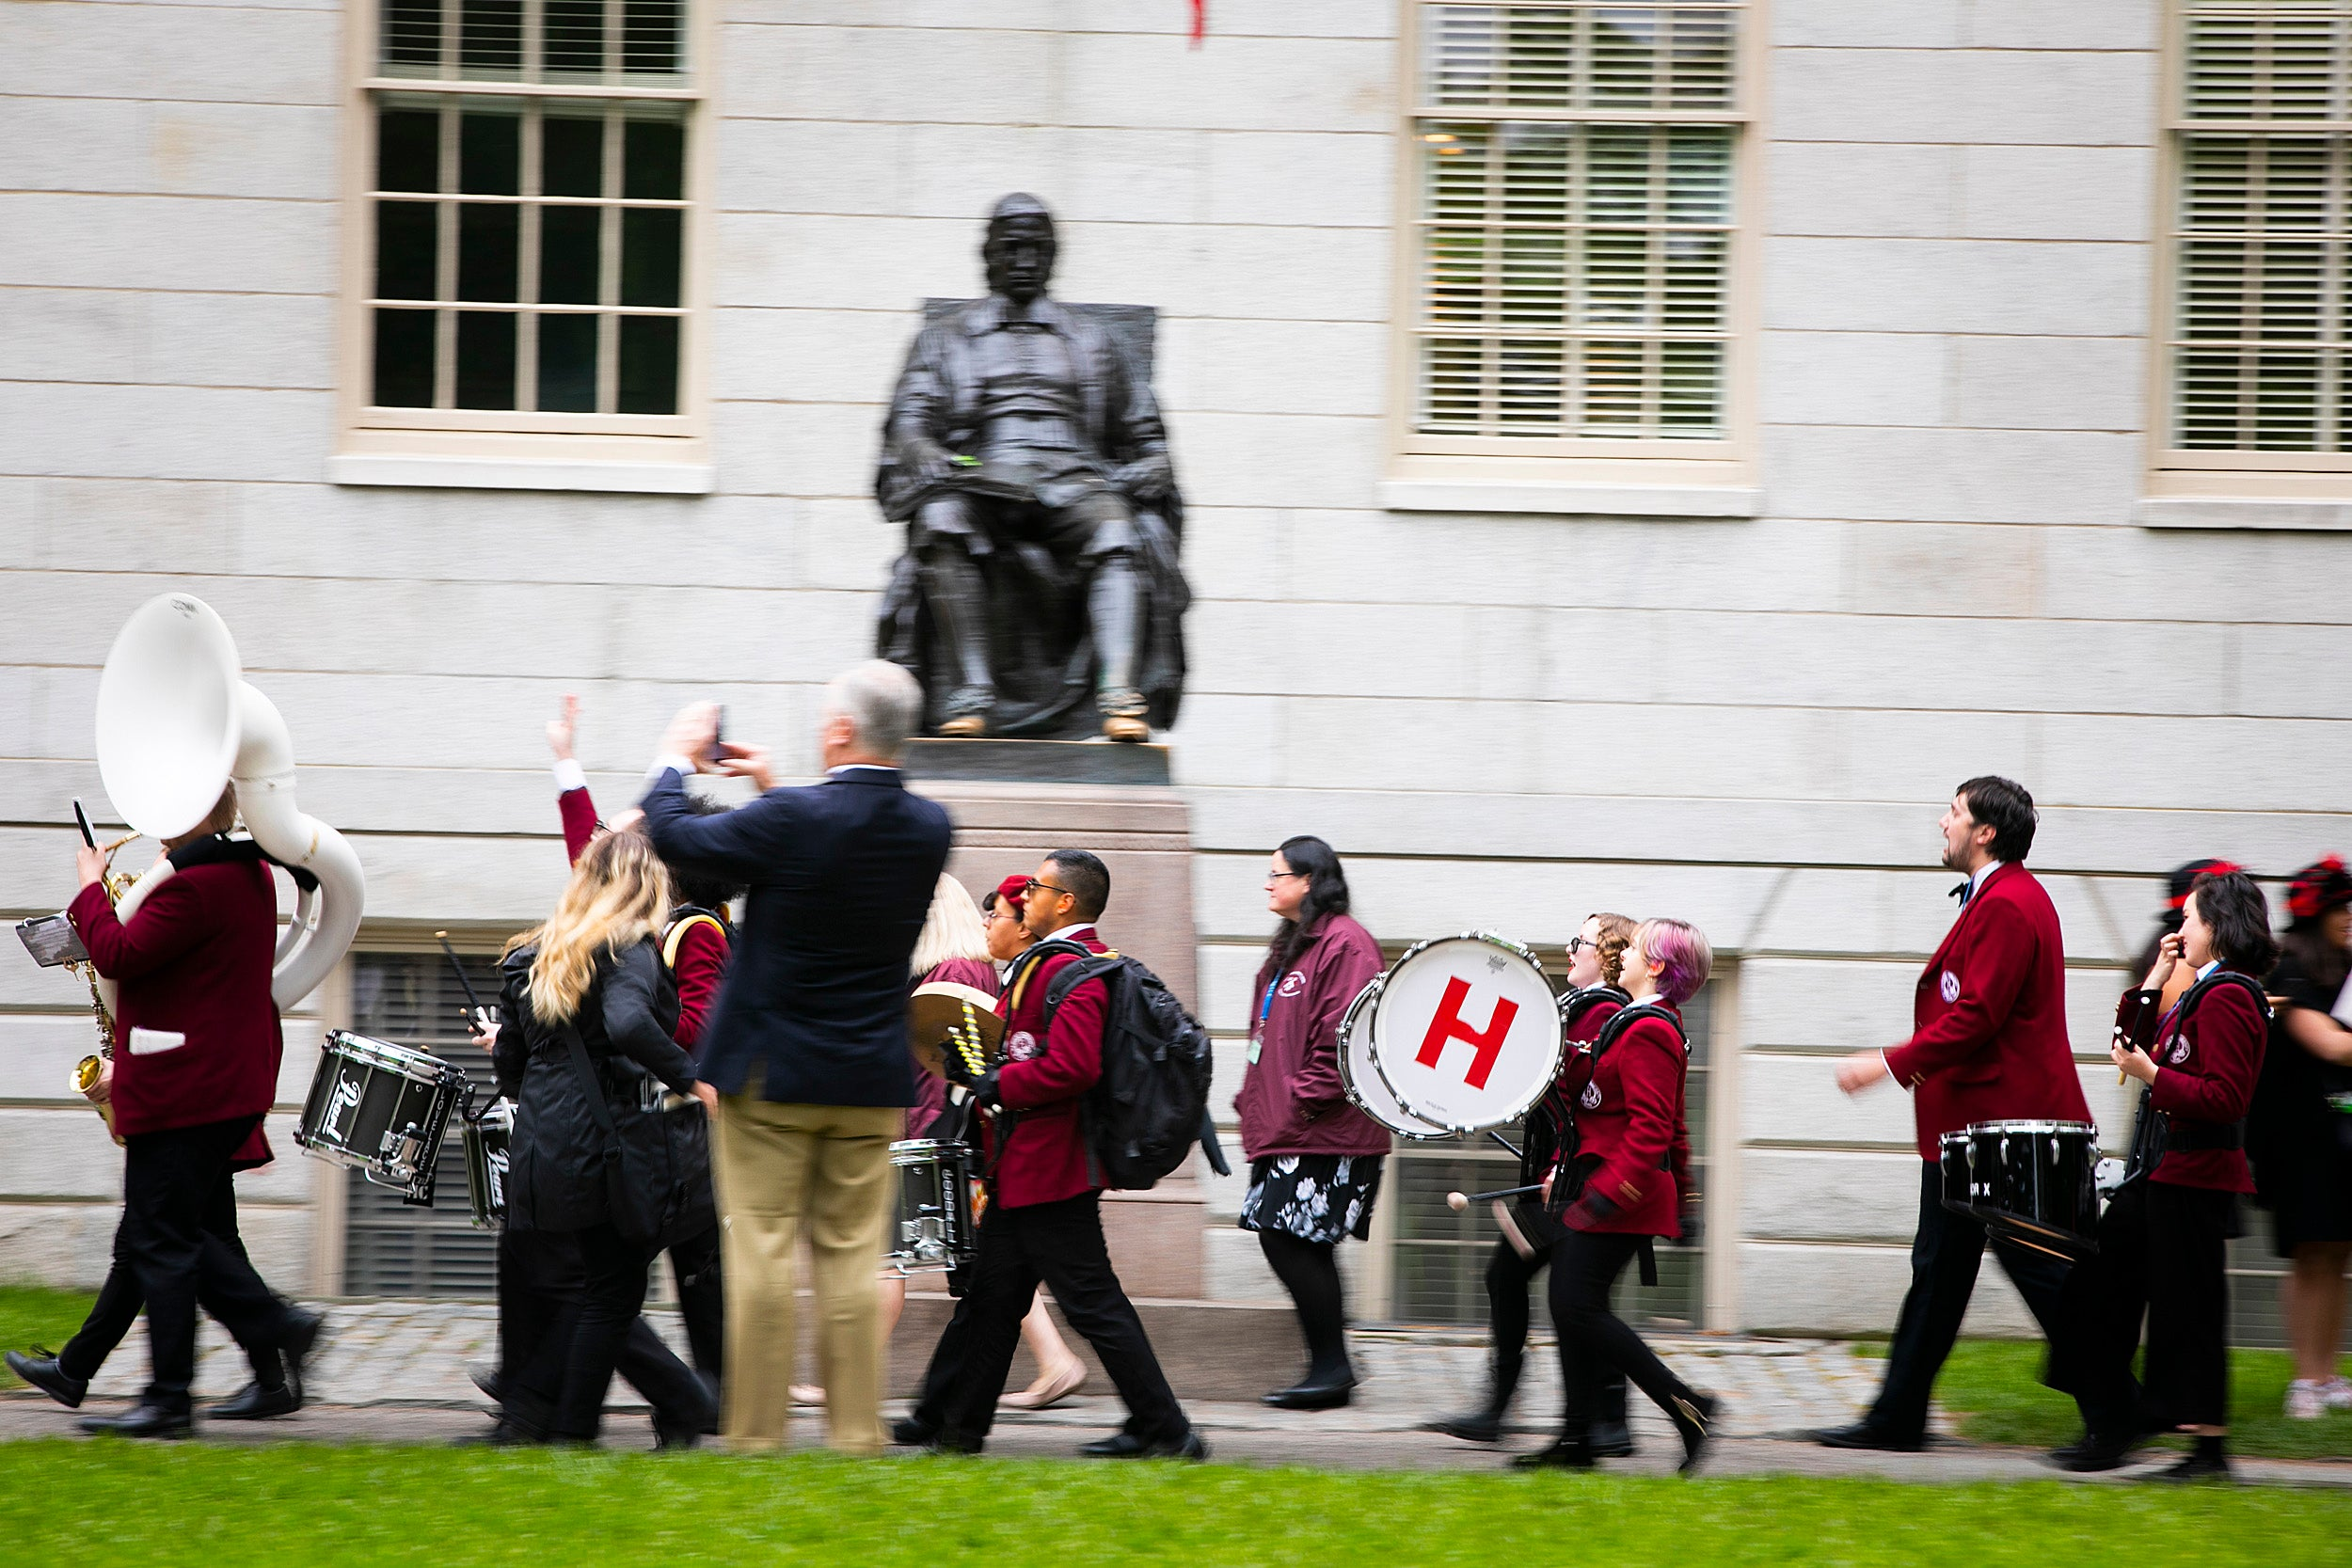 The Harvard Band marches by the John Harvard statues